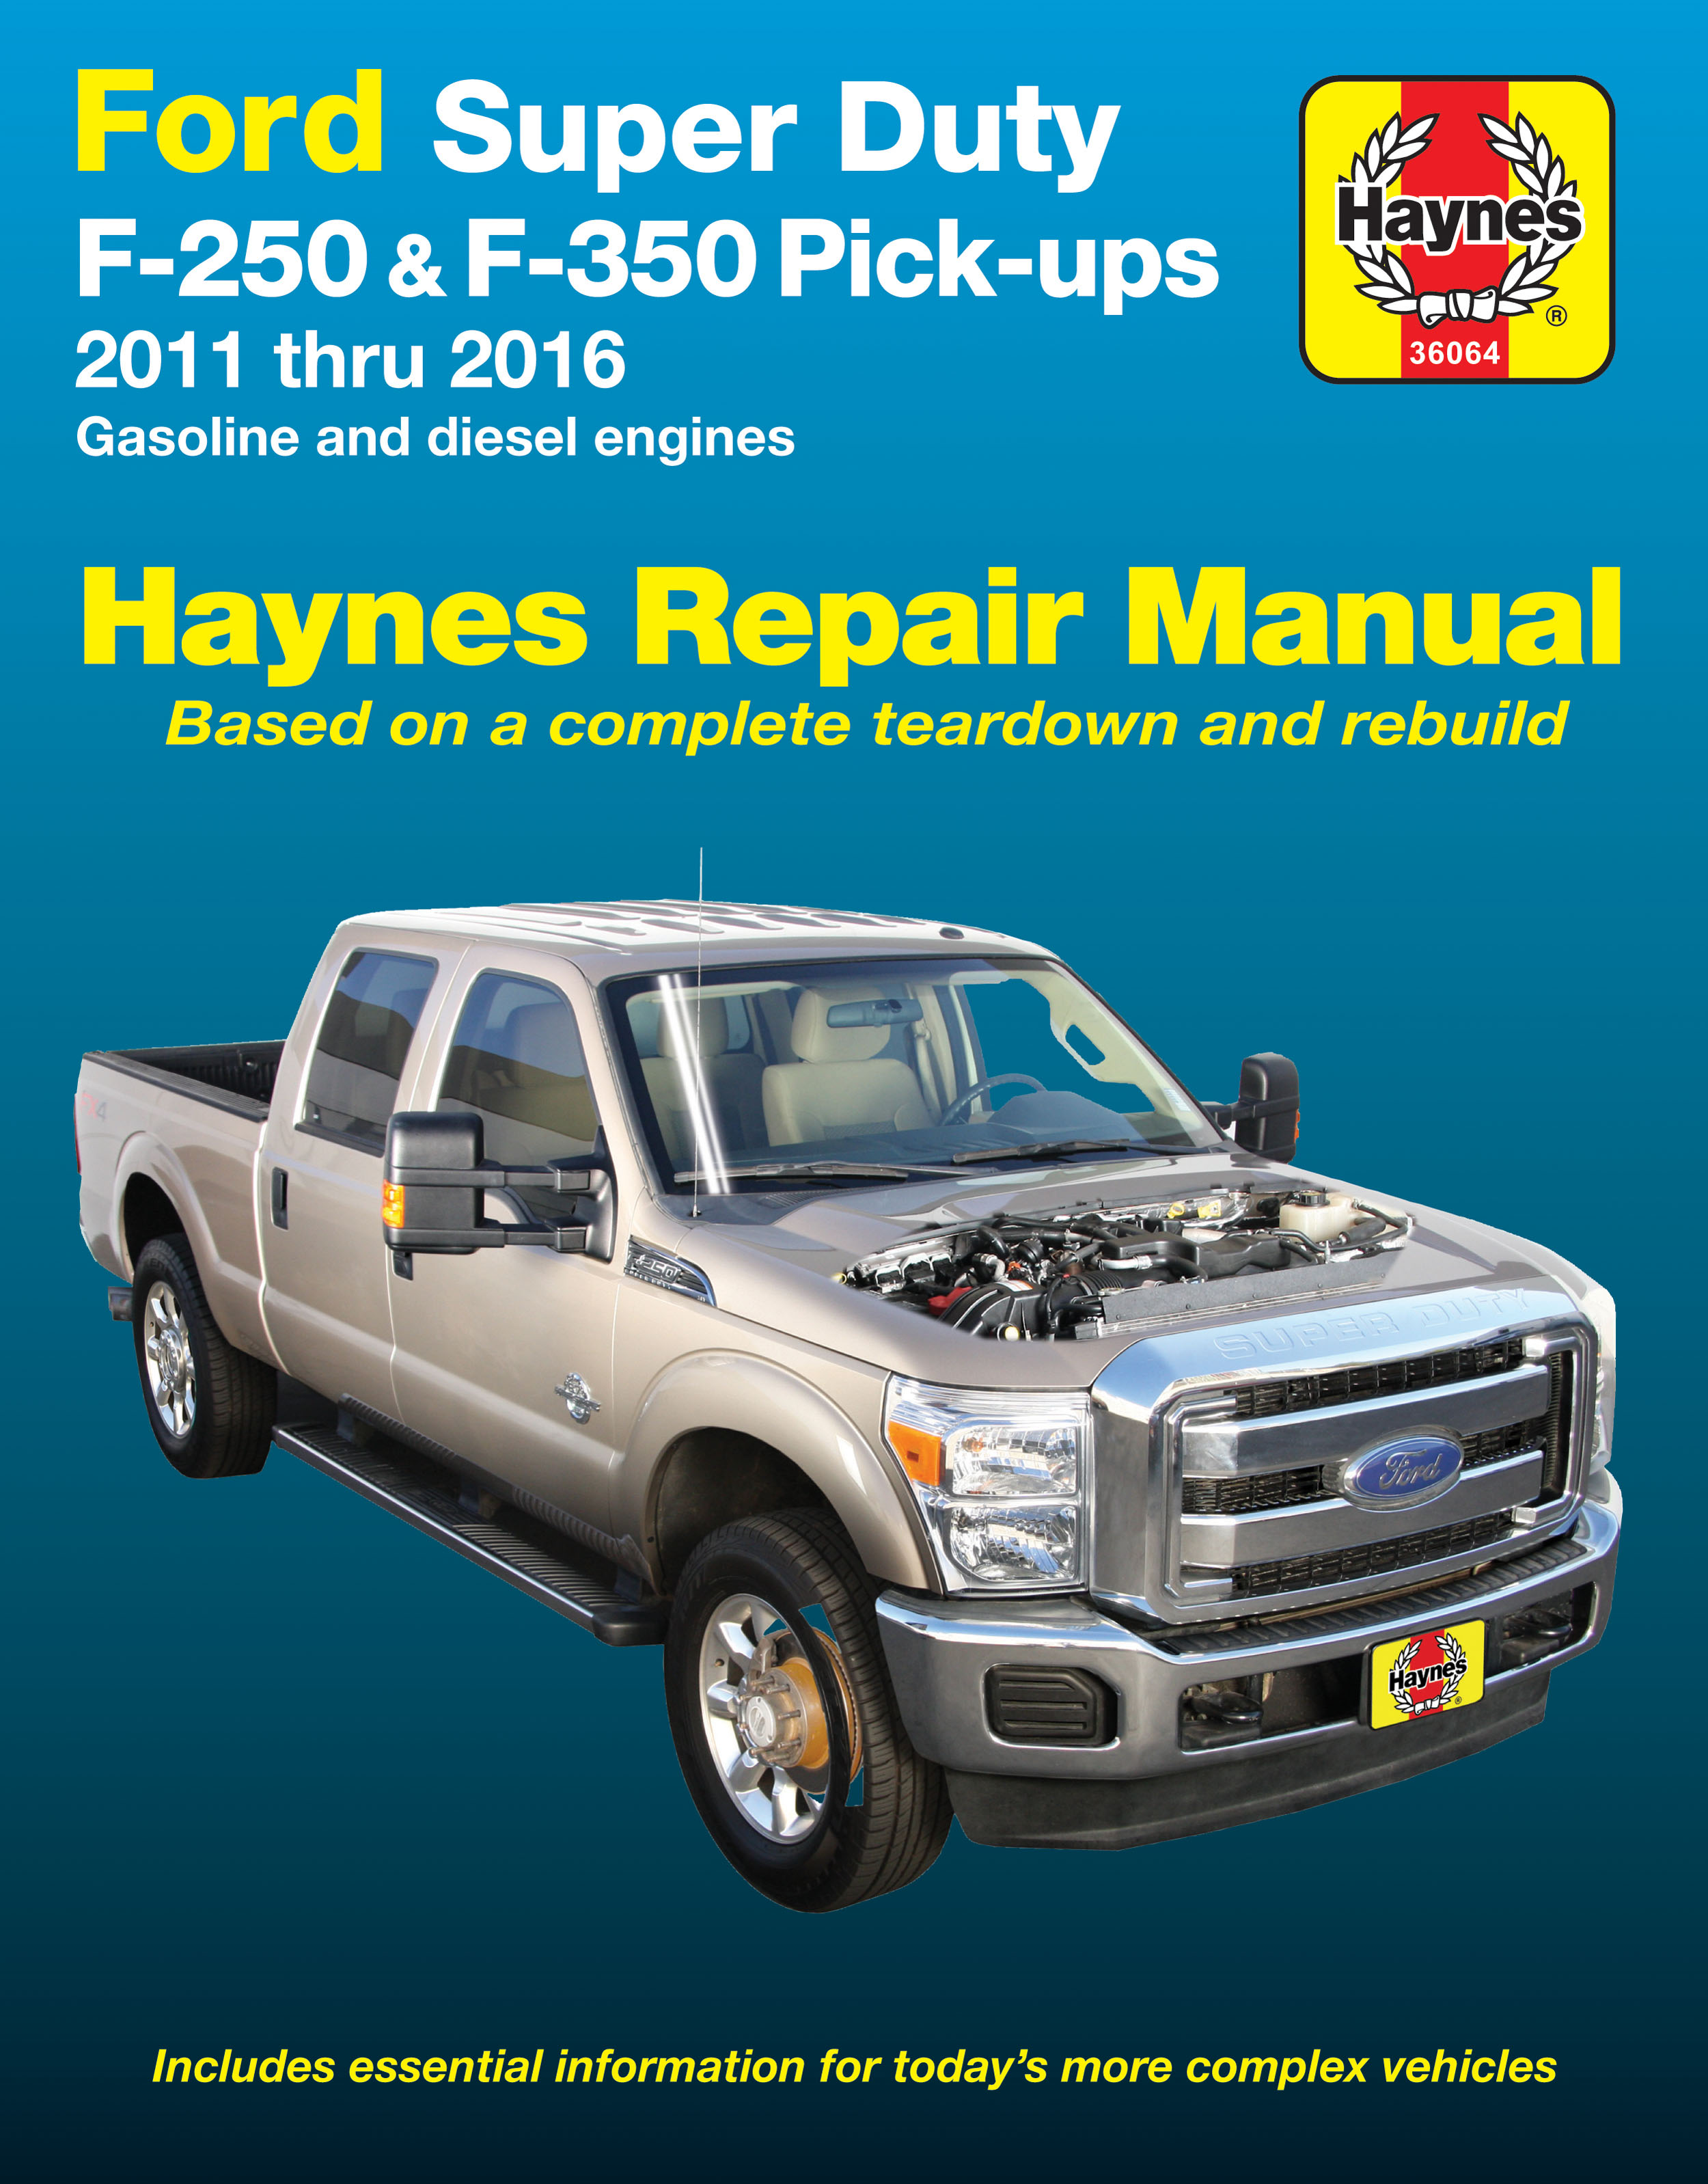 F 250 Super Duty Haynes Manuals 2011 Ford Wiring Diagram Online Printed Manual Enlarge